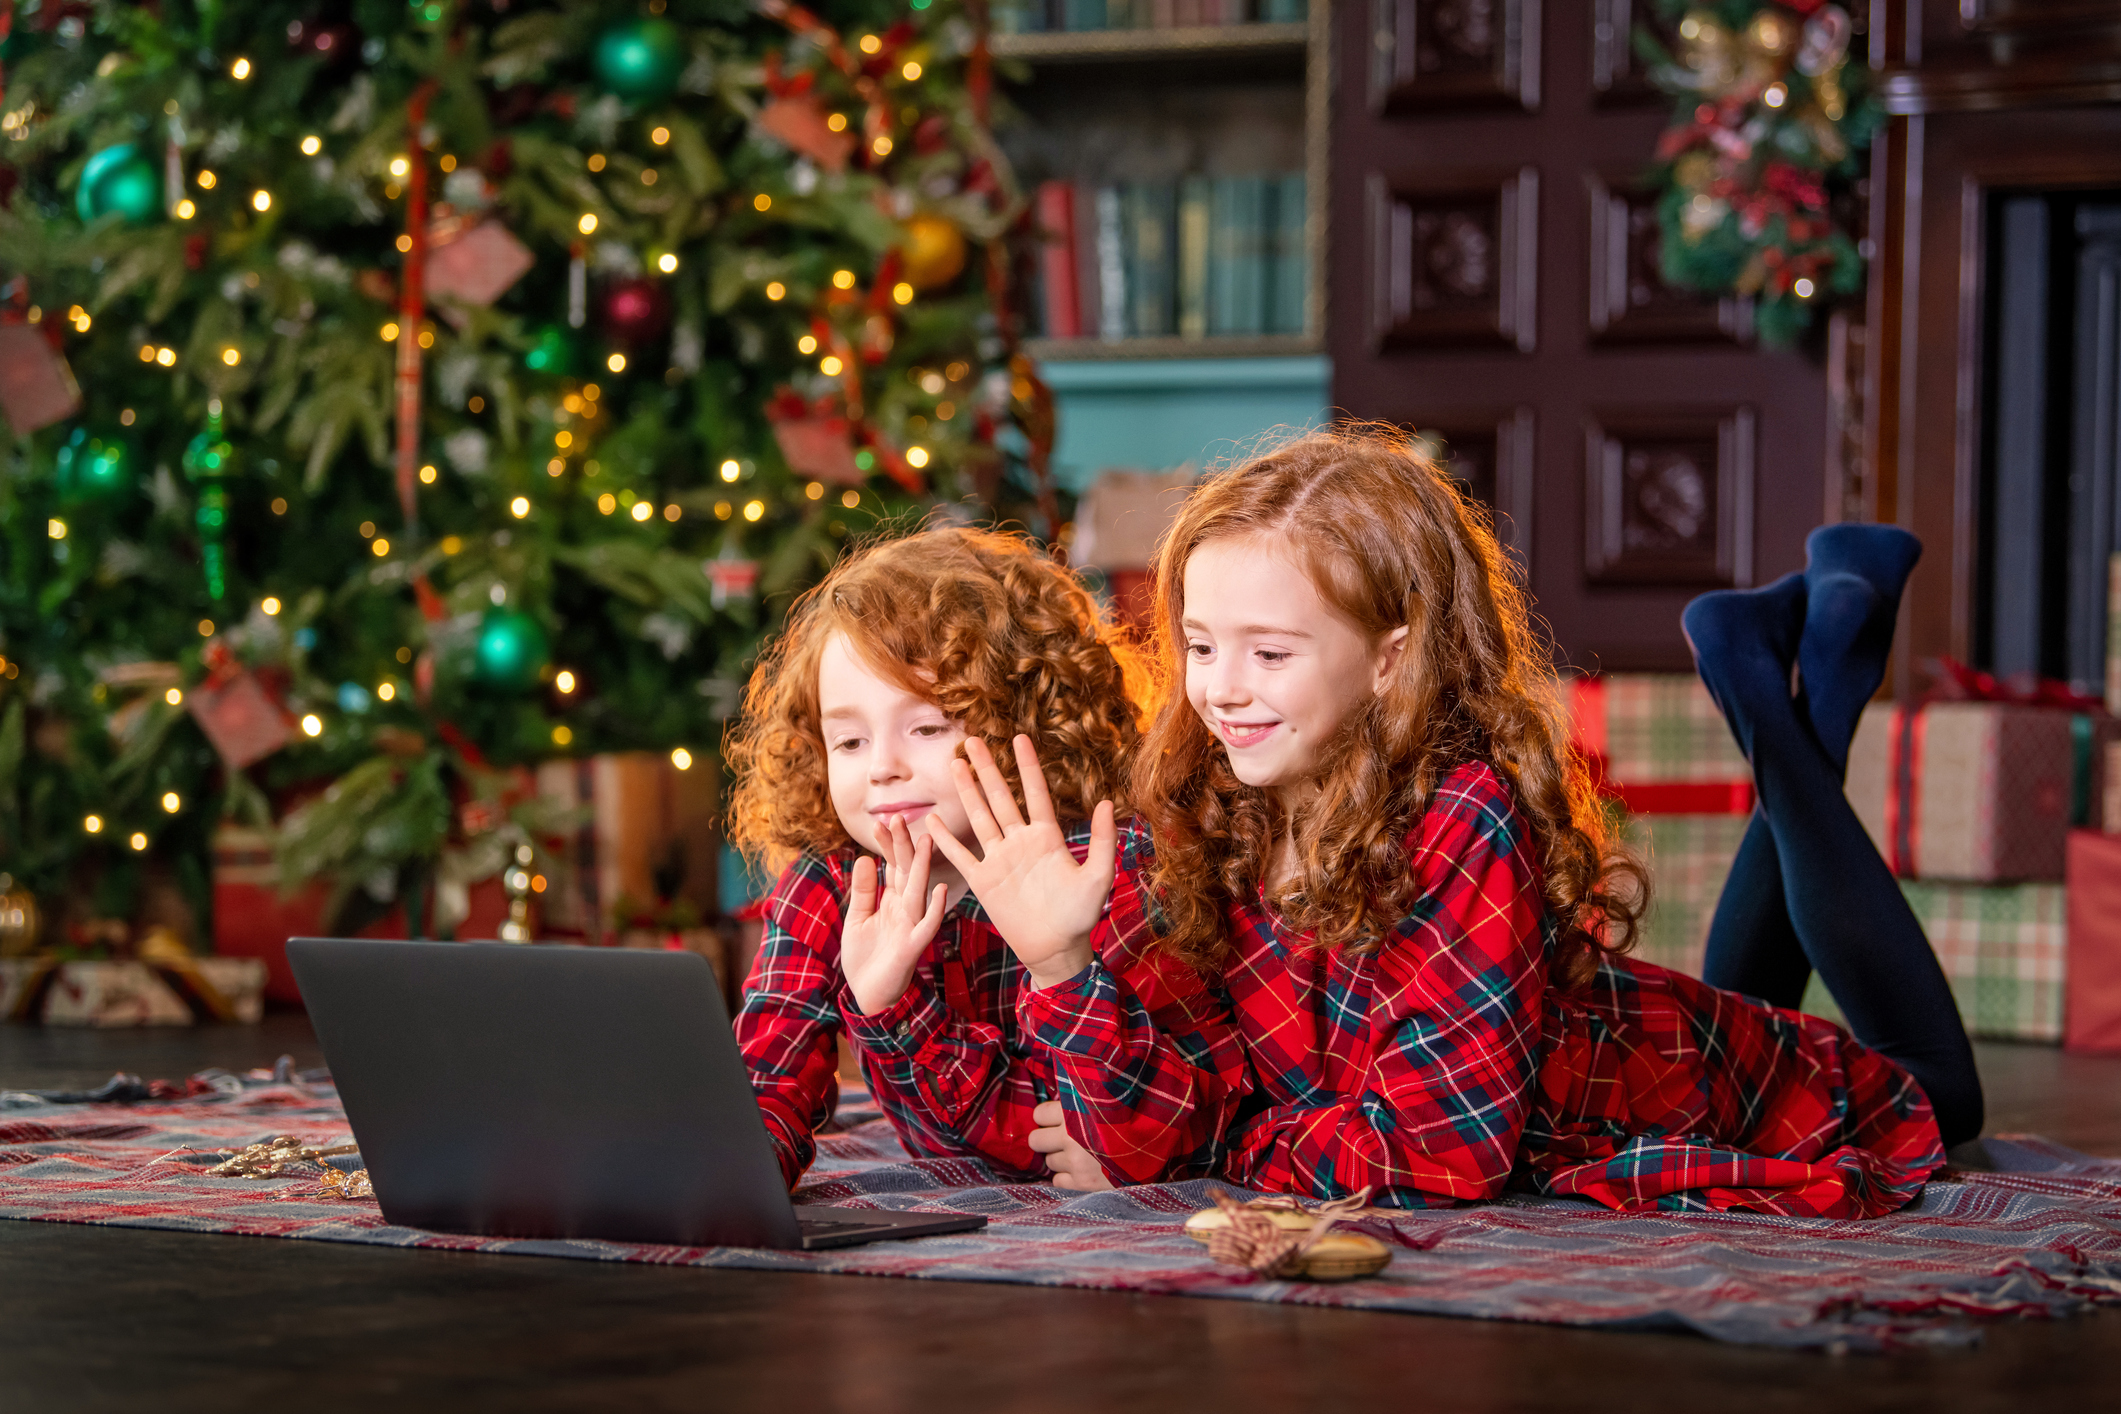 Red-haired children next to the Christmas tree and gifts communicate online through a laptop.